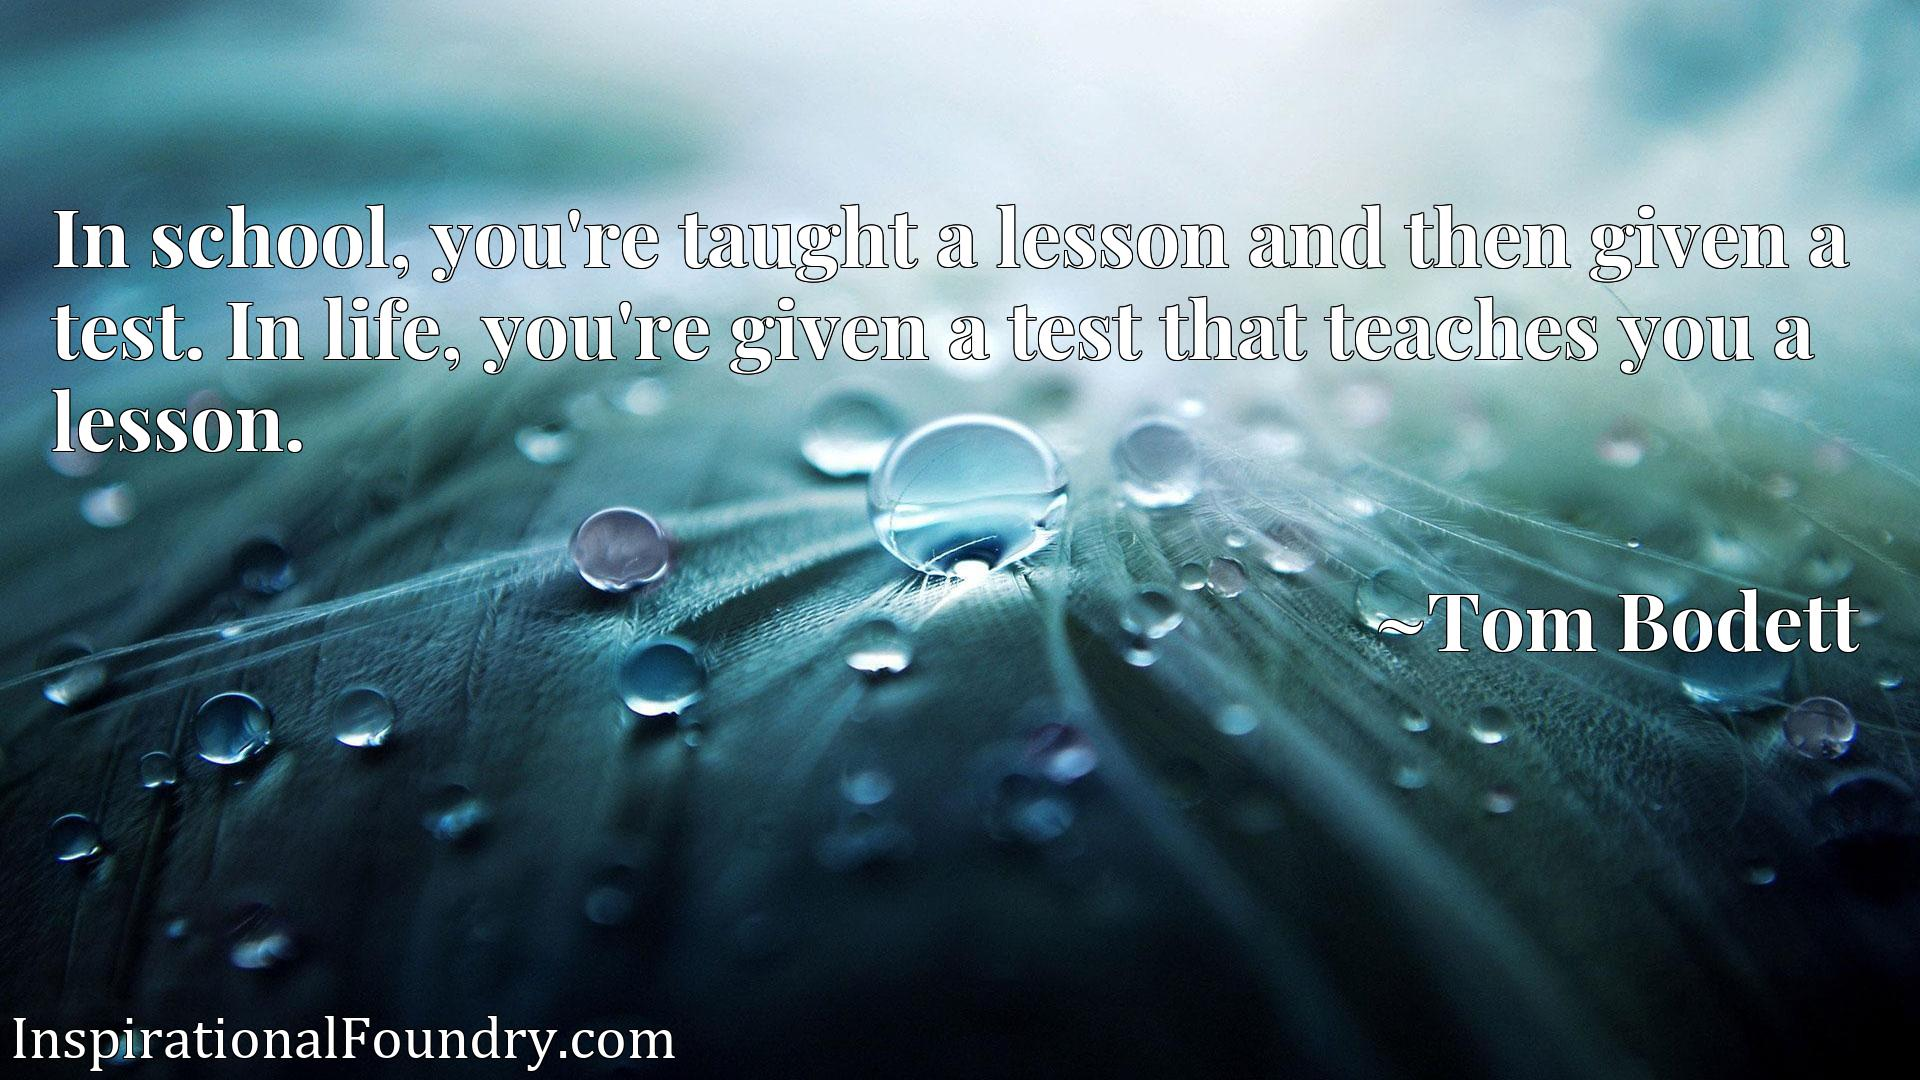 In school, you're taught a lesson and then given a test. In life, you're given a test that teaches you a lesson.